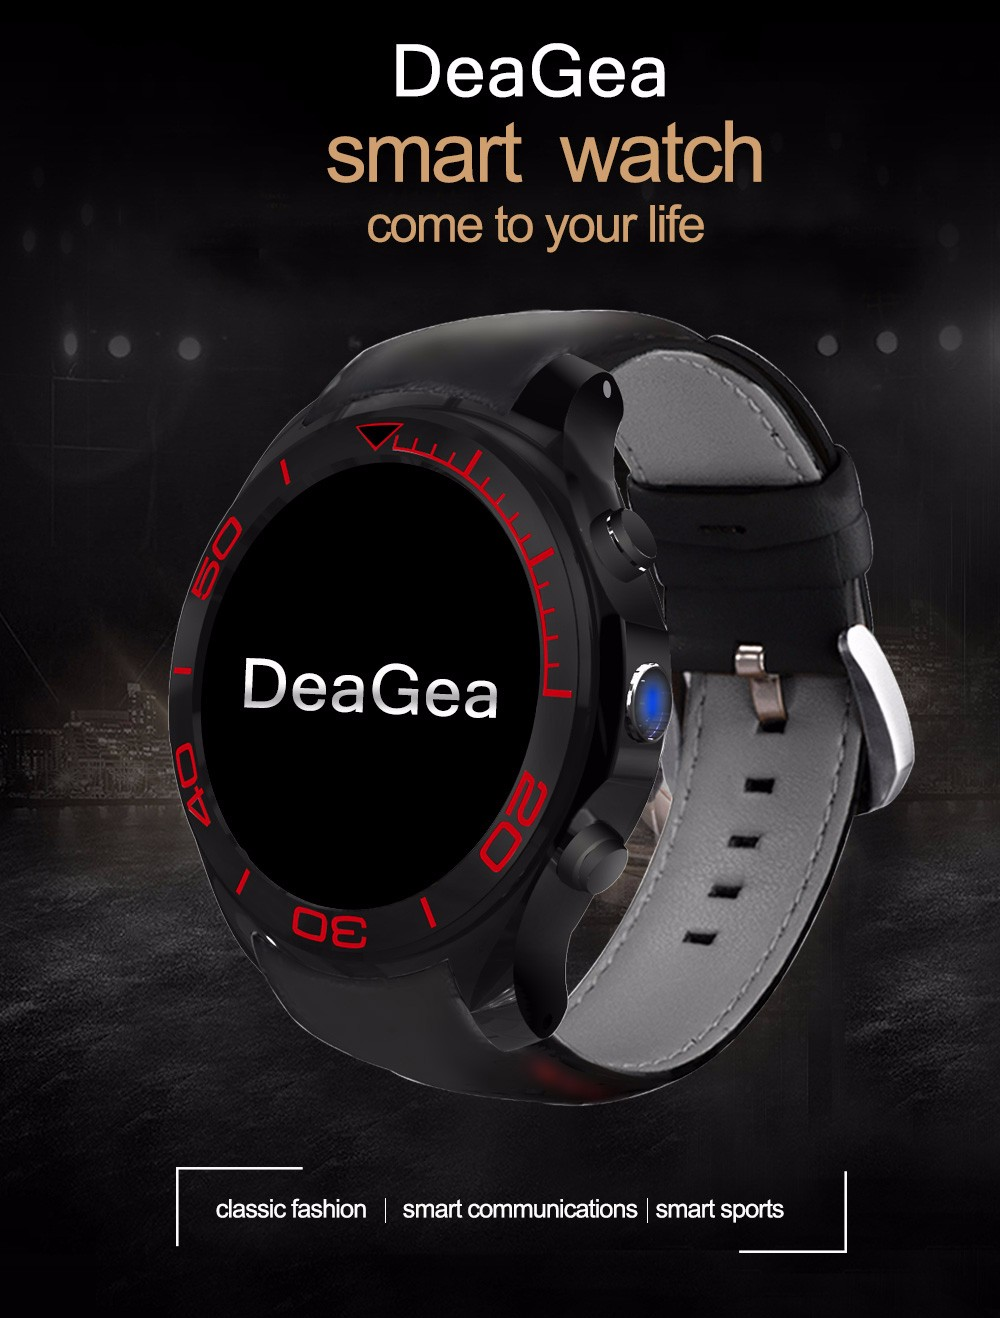 DeaGea S1 Plus 3G Smartwatch